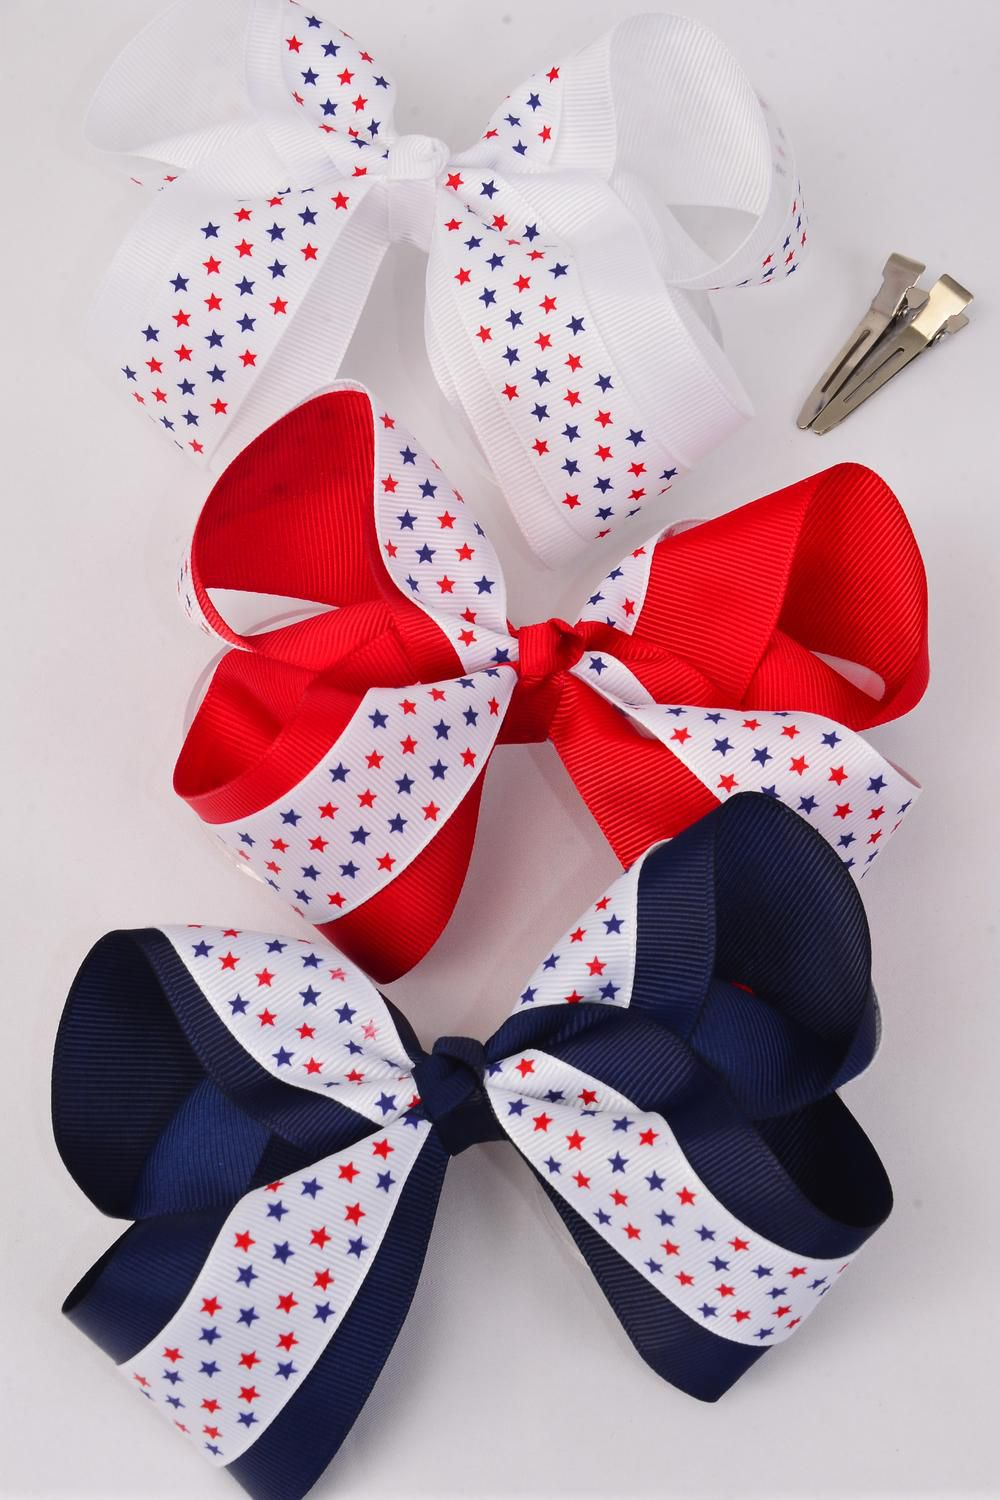 "Hair Bow Jumbo Double Layered Patriotic Bow Stars Red & White & Navy Mix Grosgrain Bow-tie/DZ **Alligator Clip** Bow-6""x 5"" Wide,4 of each Color Asst,Clip Strip & UPC Code"